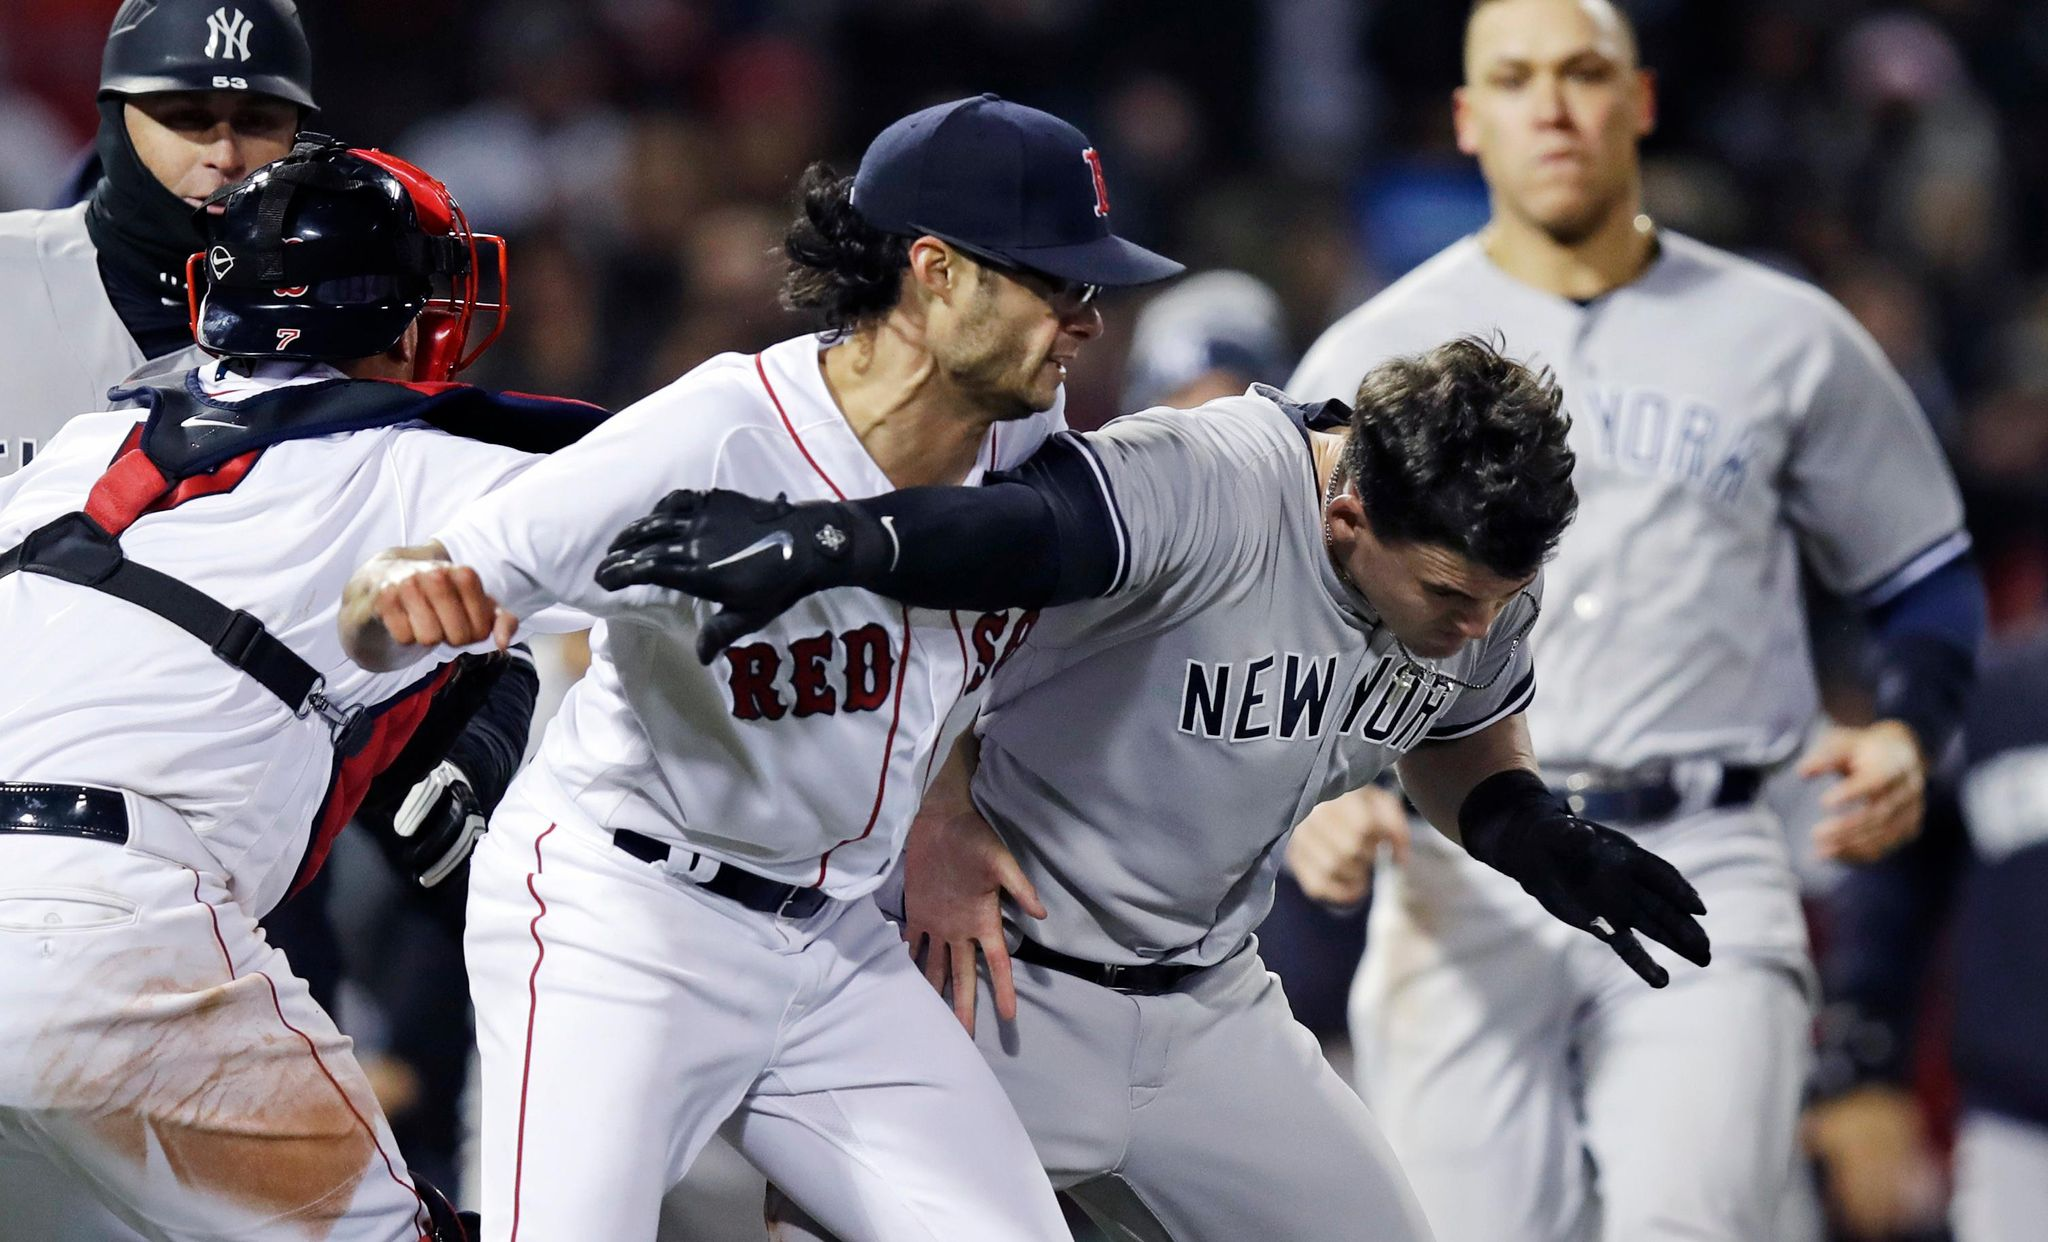 Yankees_red_sox_baseball_79259_s2048x1242